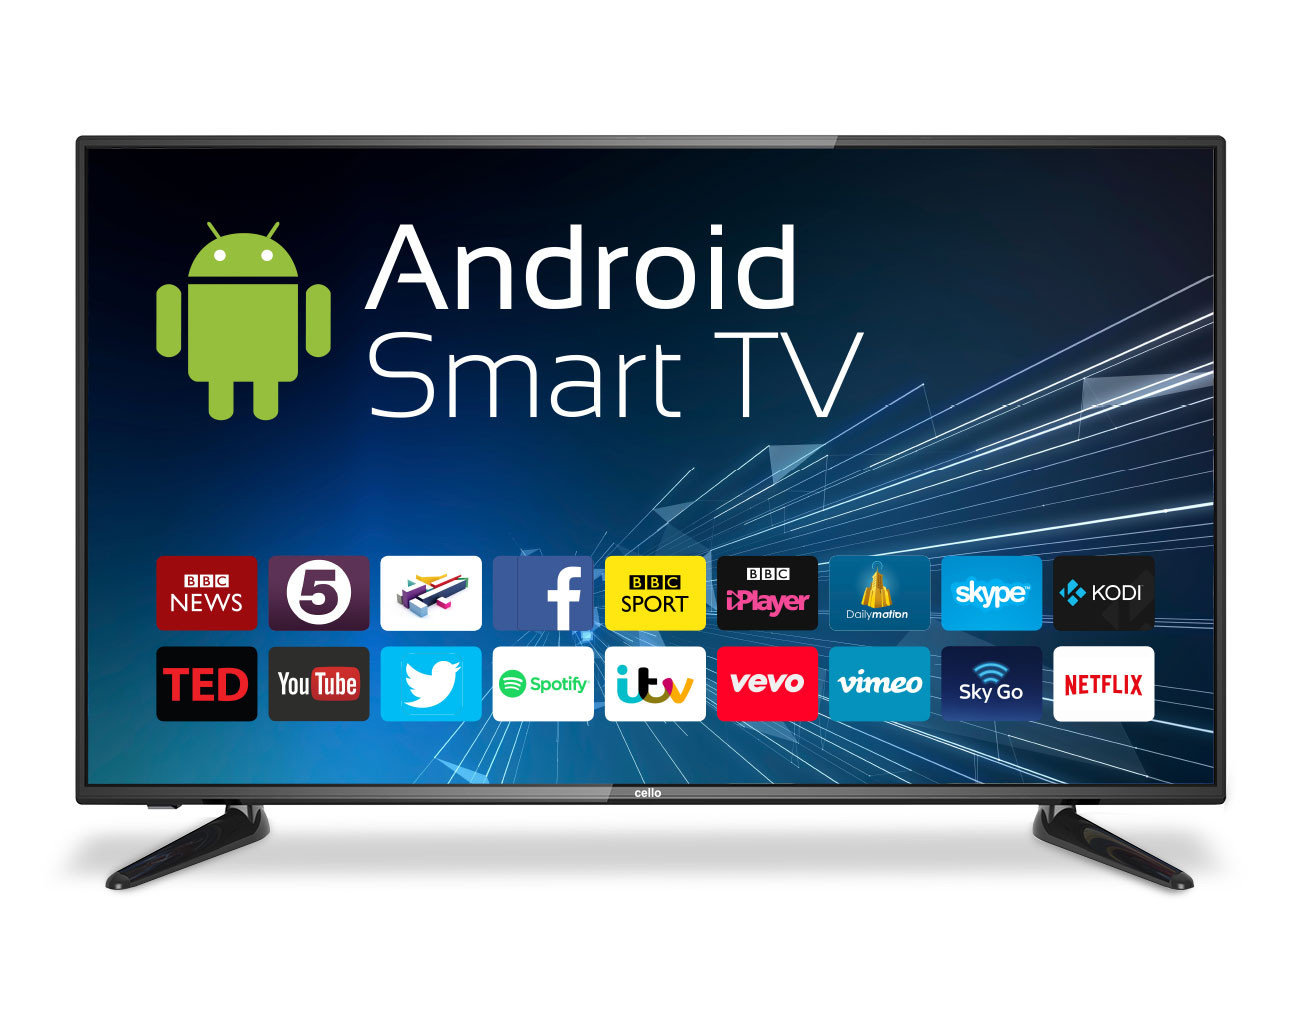 "Tv 43 Smart Tv Magnífico 43"" android Smart Led Tv with Wi Fi and Freeview T2 Hd Of Tv 43 Smart Tv Innovador Samsung Ue43j5500akxxu 43"" Full Hd Smart Tv Samsung From"